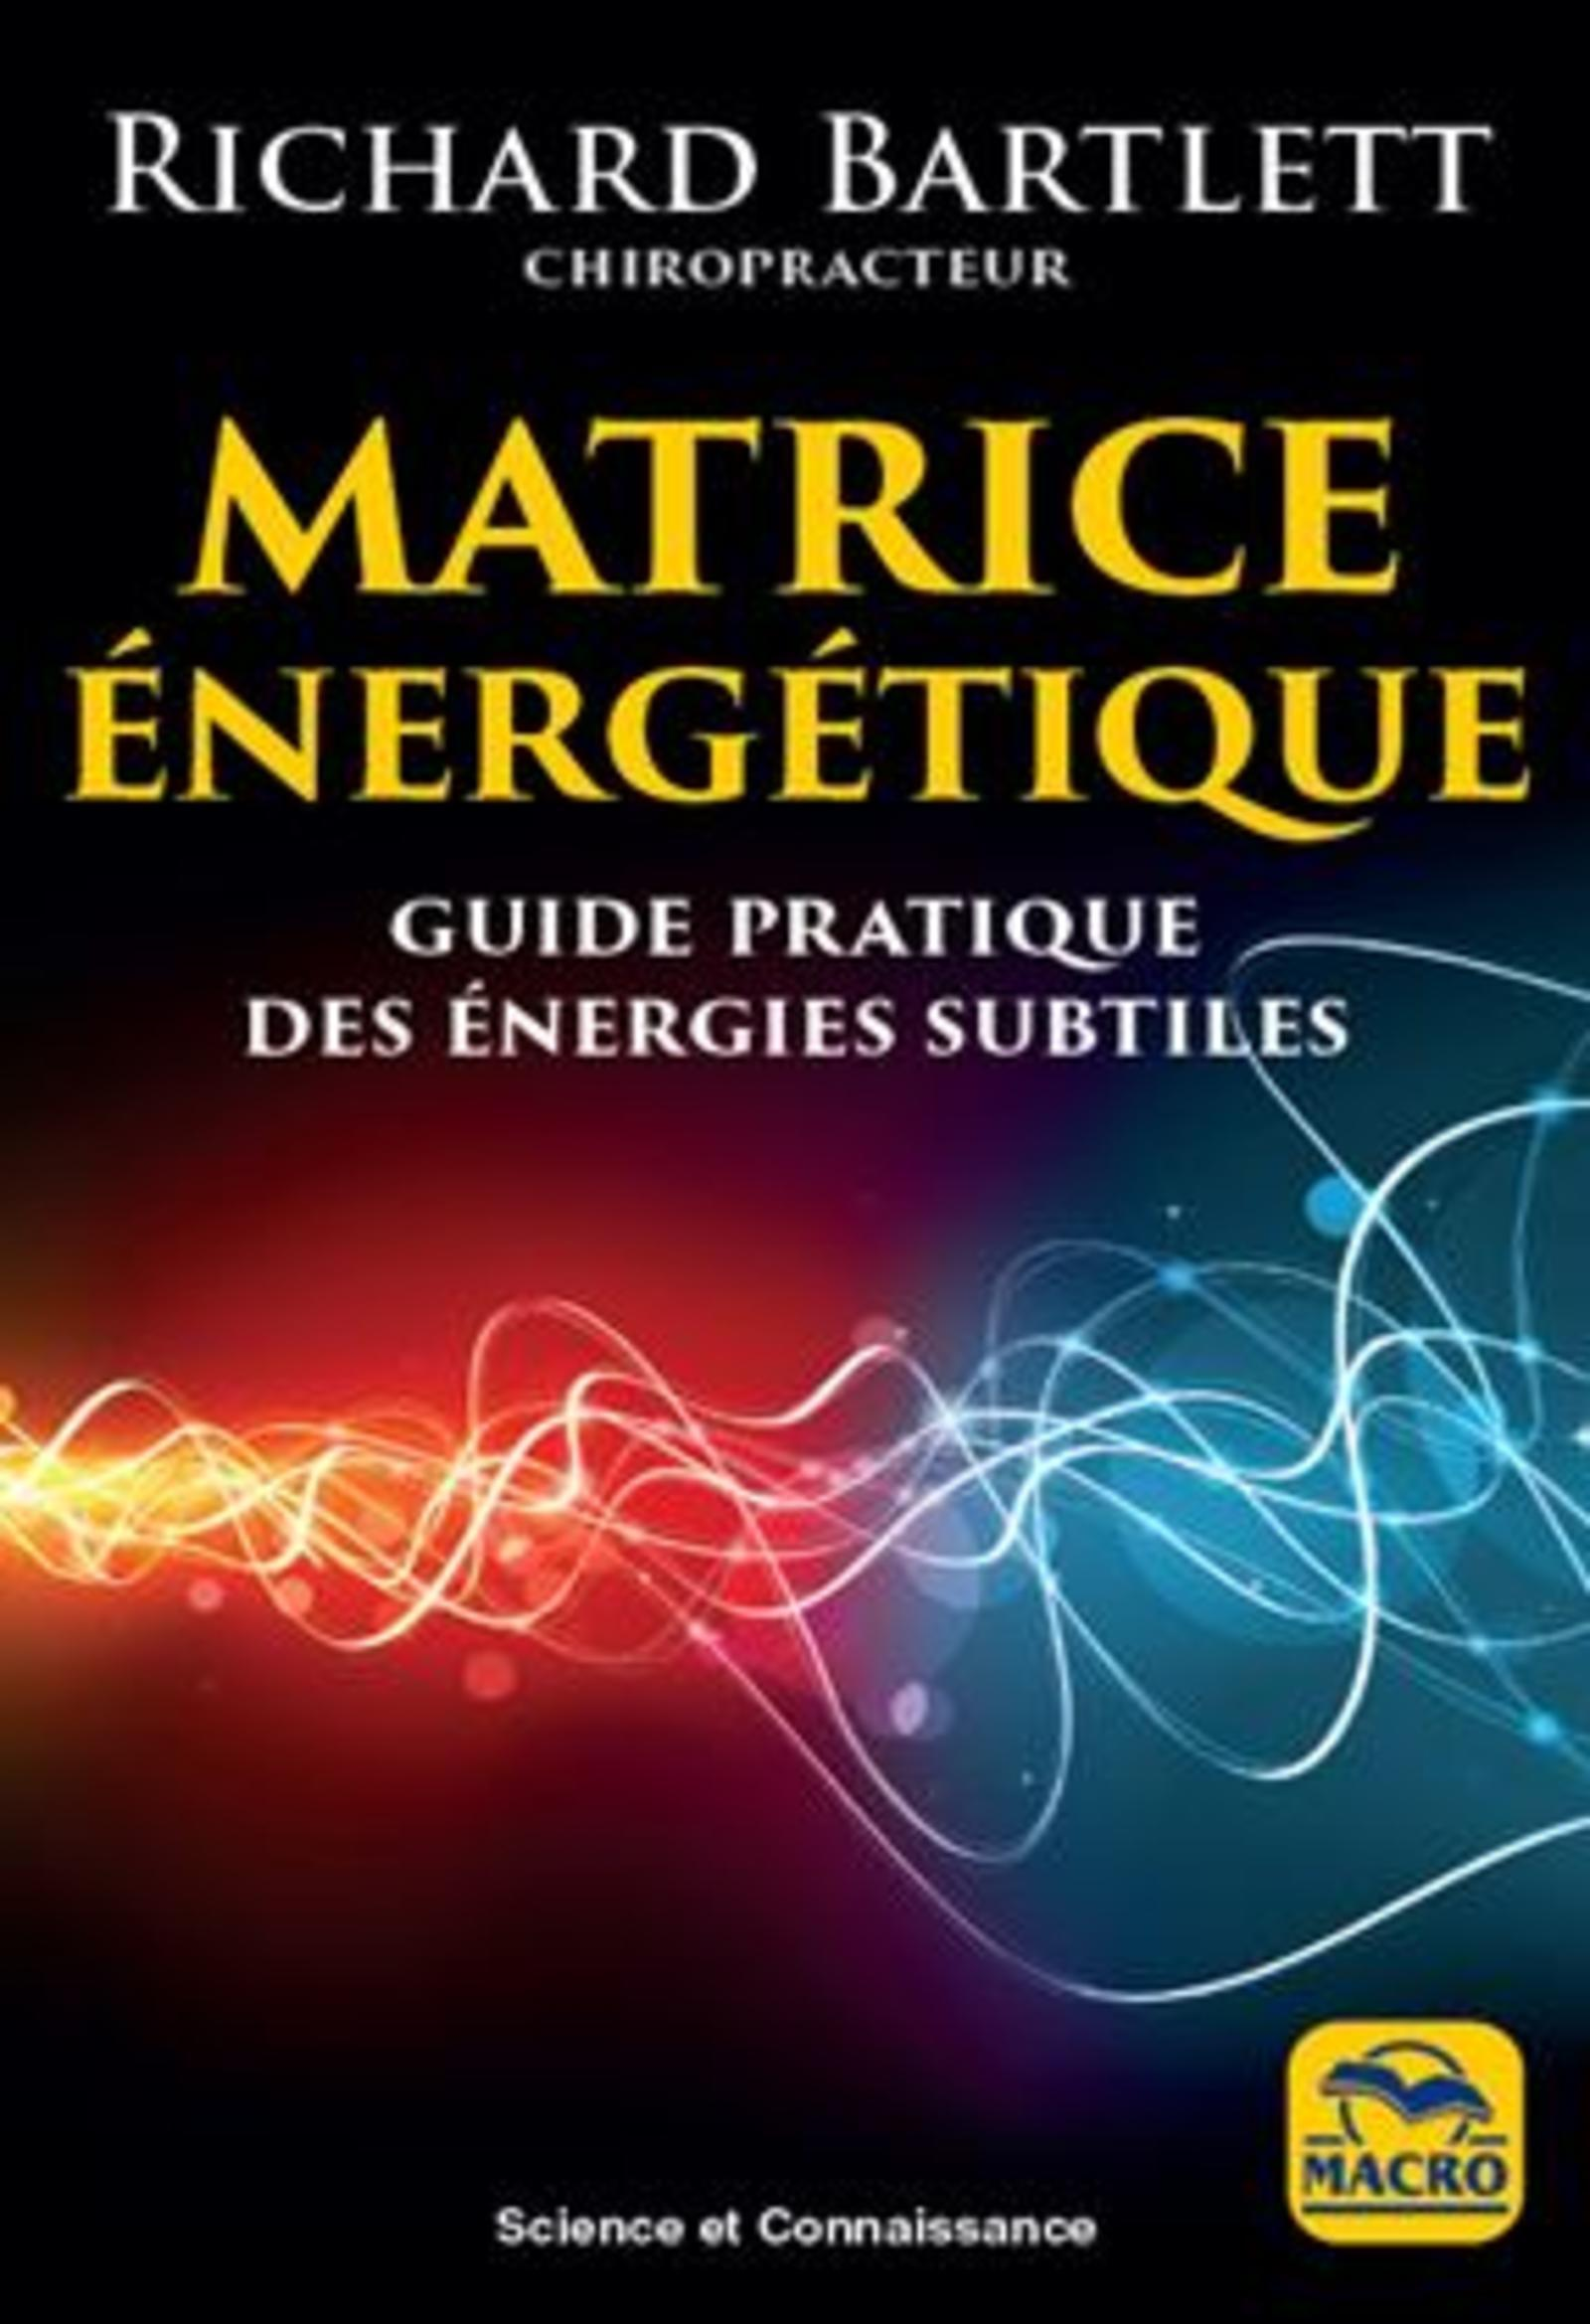 MATRICE ENERGETIQUE - GUIDE PRATIQUE DES ENERGIES SUBTILES